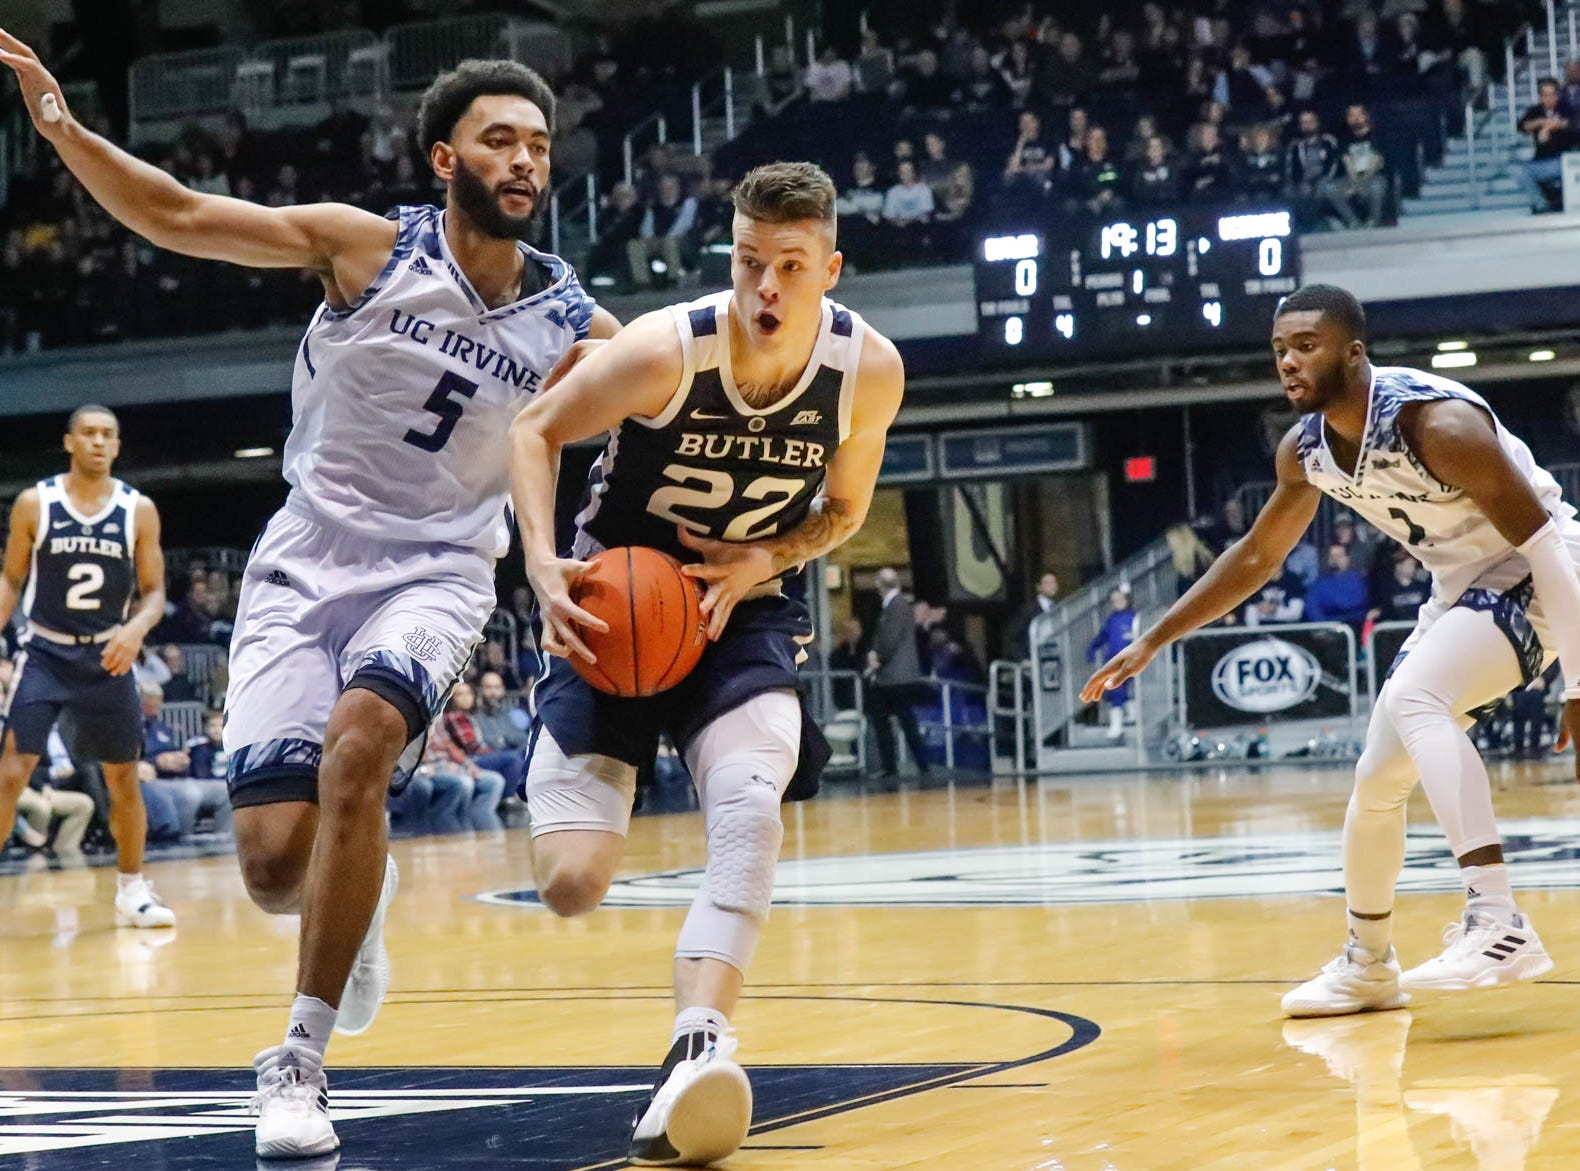 Butler University's forward Sean McDermott (22), drives toward the basket during a fast break past UC Irvine's forward Jonathan Galloway (5), during a game between Butler University and UC Irvine, at Hinkle Fieldhouse on Friday, Dec. 21, 2018.